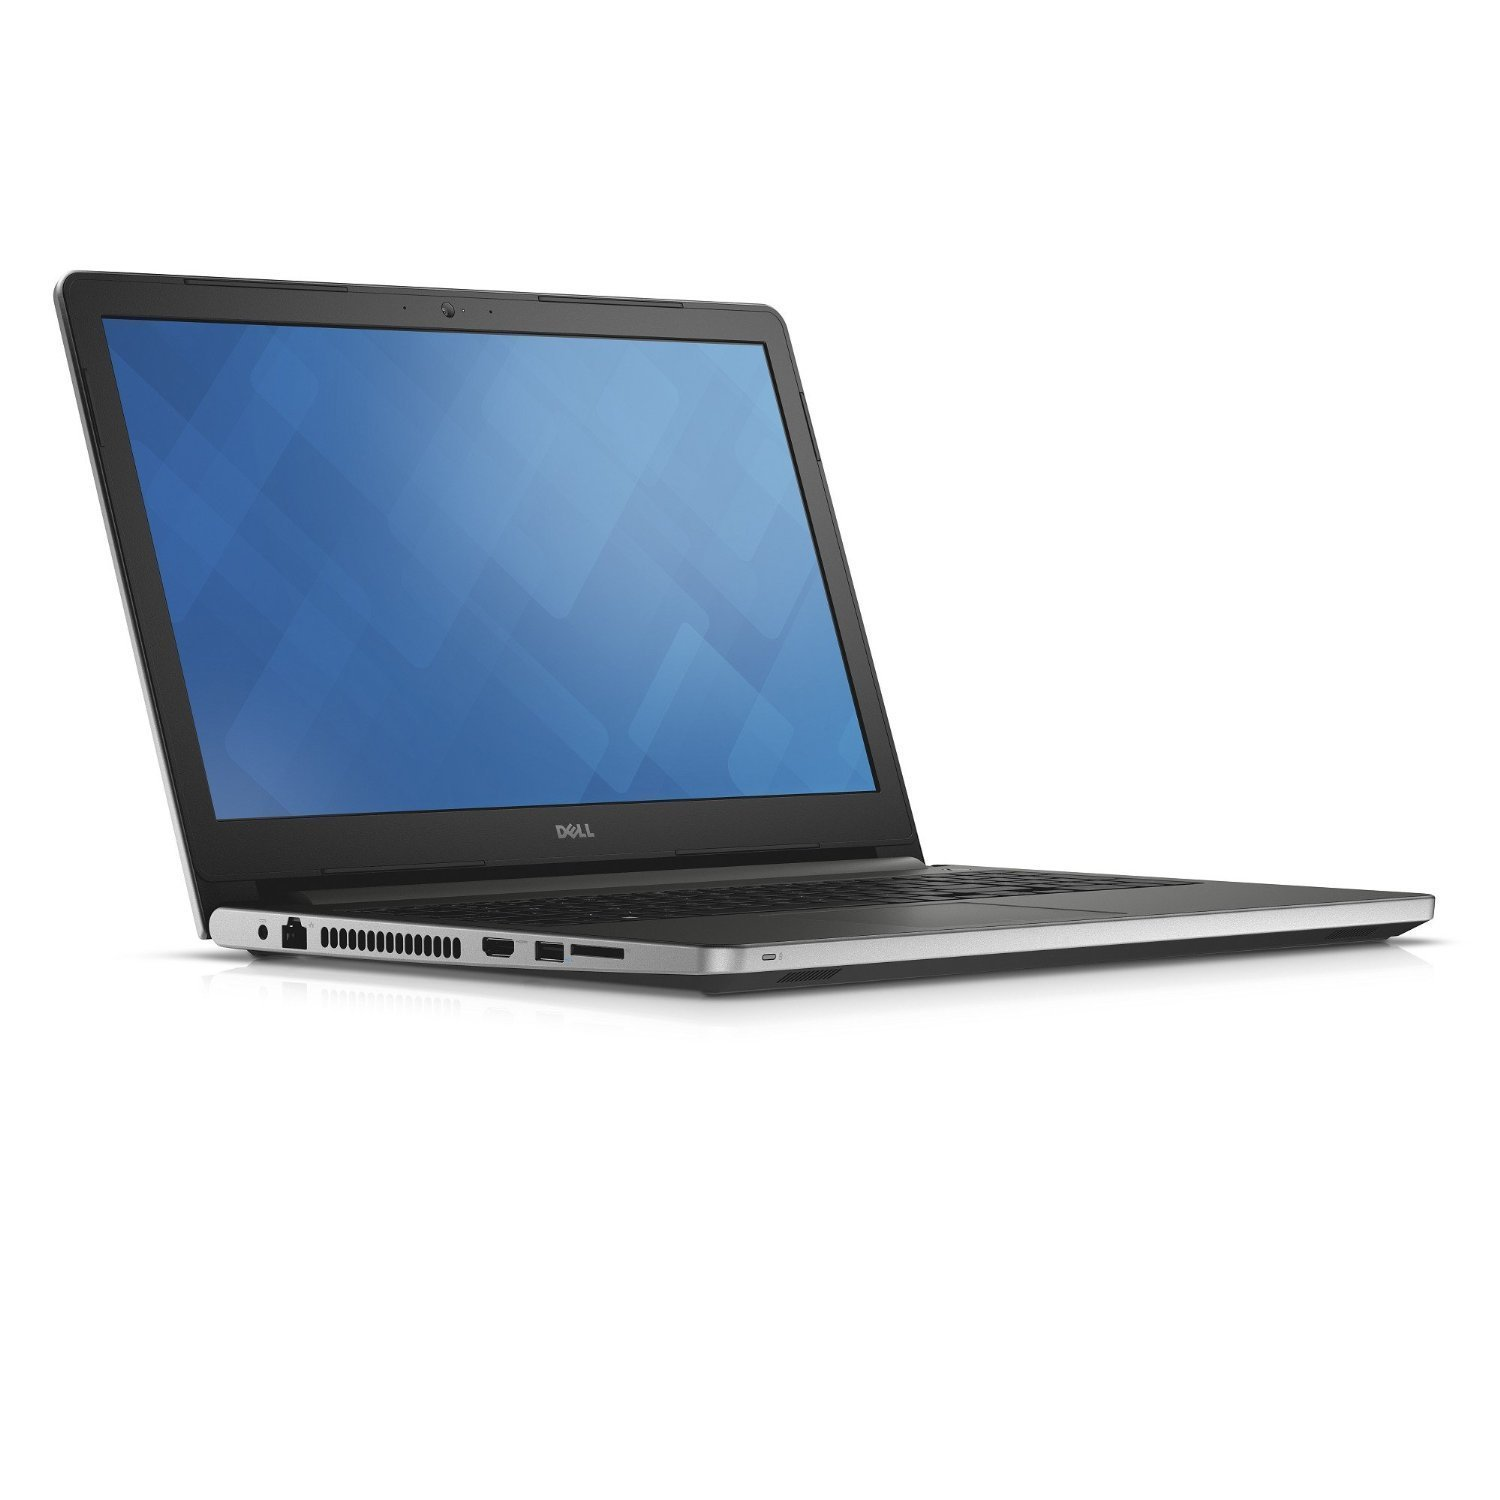 Dell Inspiron 15-5559 Laptop